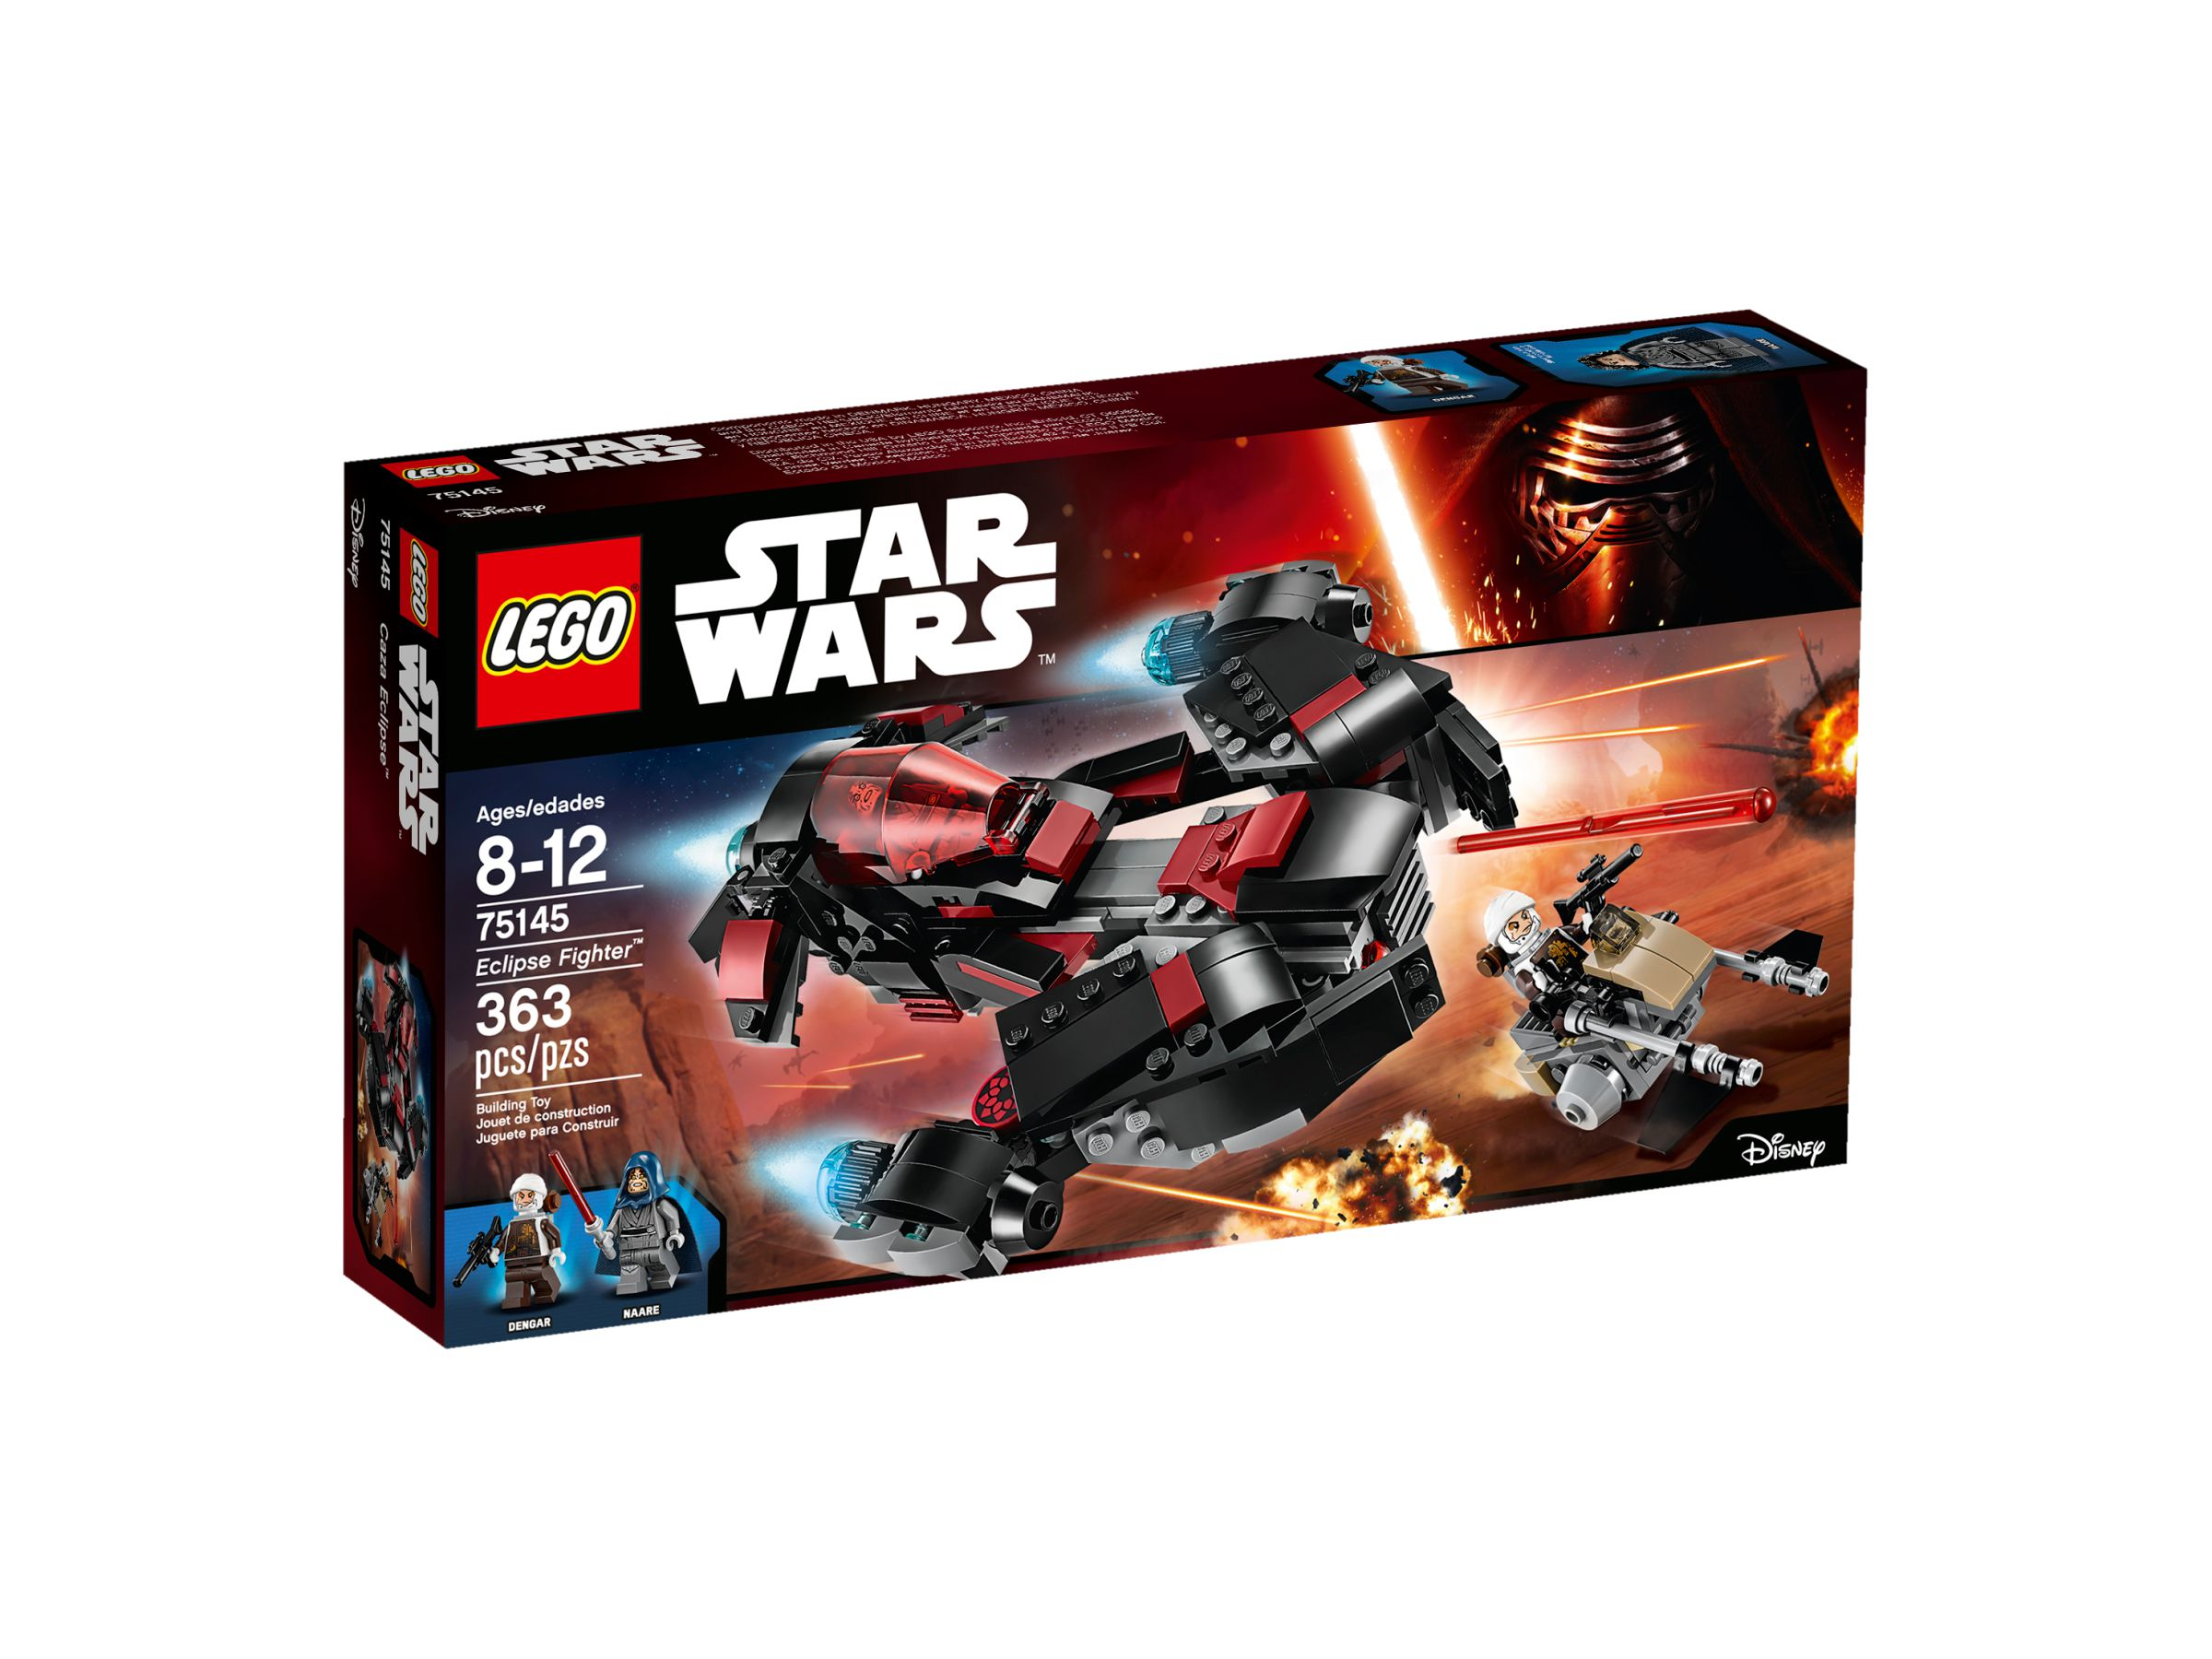 LEGO Star Wars 75145 Eclipse Fighter™ LEGO_75145_alt1.jpg